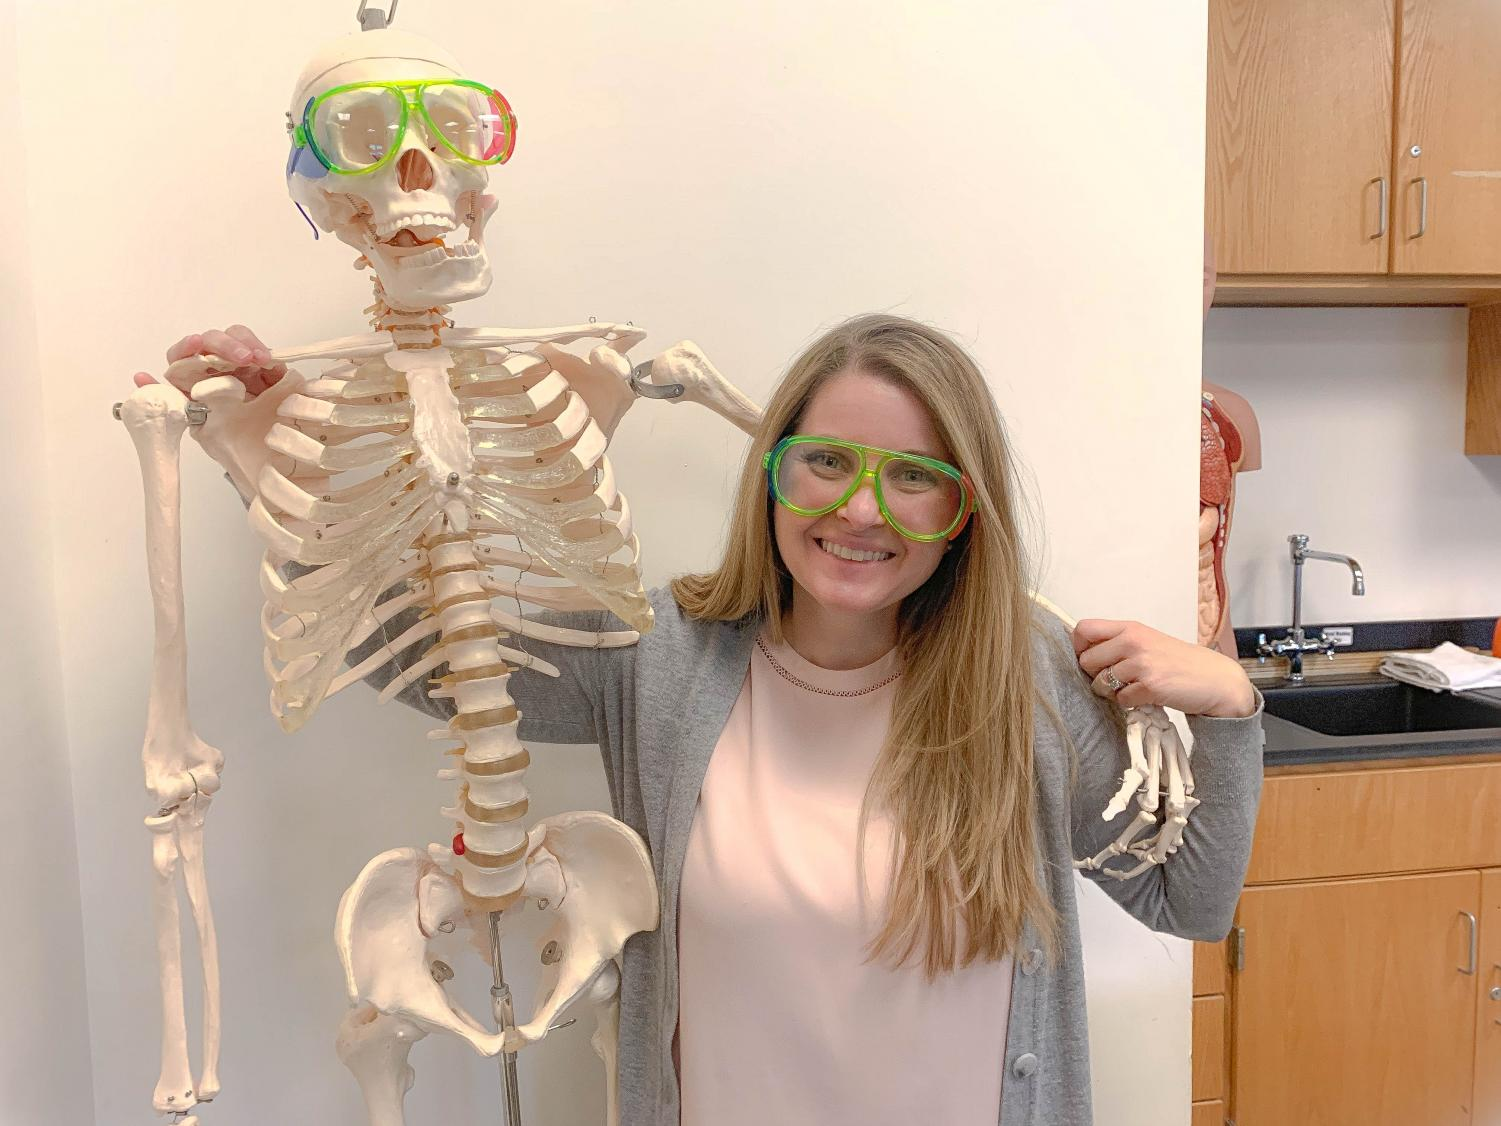 New Biology teacher Courtney Giplin came to Algonquin after subbing in the district last year and teaching in the Midwest.